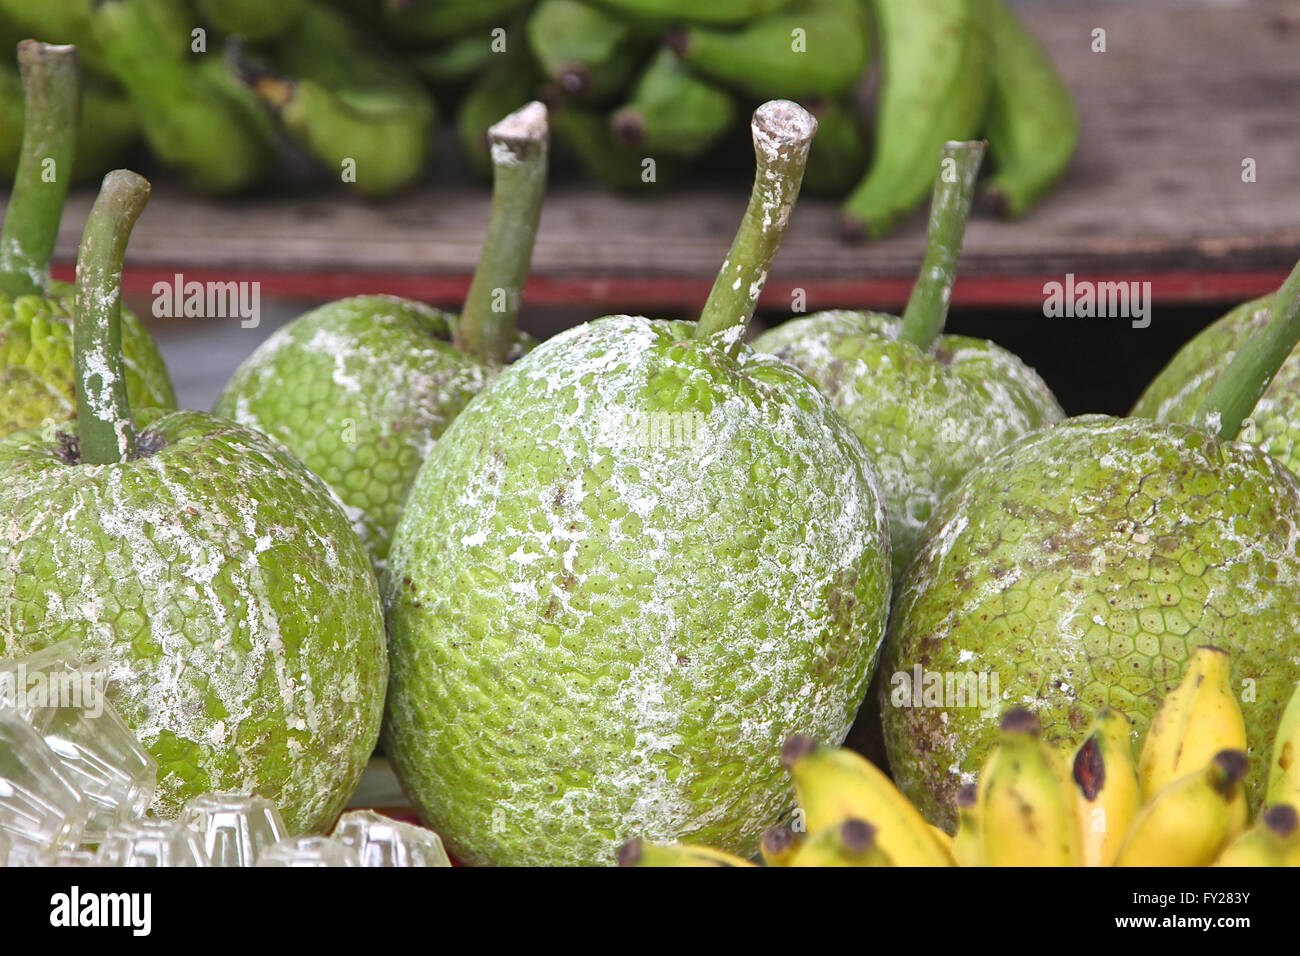 endemic tropical fruit, the Seychelles, the equator - Stock Image